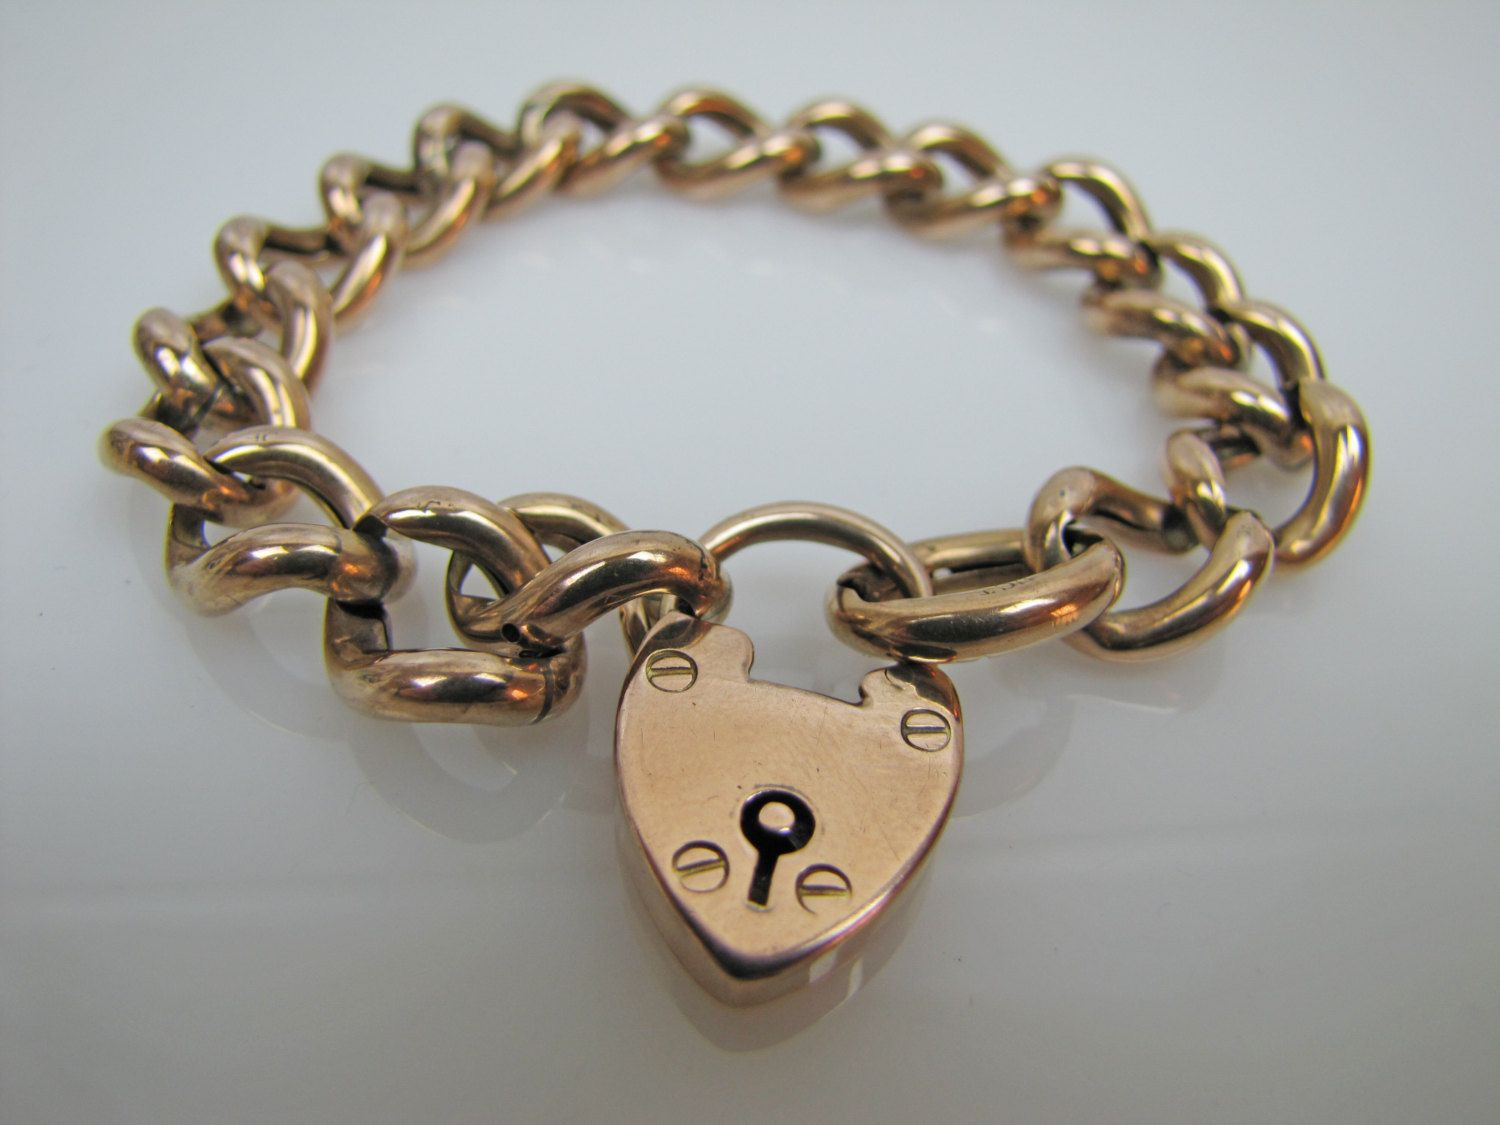 Antique Rose Gold Padlock Heart Charm Bracelet 9 Carat English Curb Figaro Chain Hallmark 1904 Victorian Edwaridan Love Token Jewelry By Mercymadge